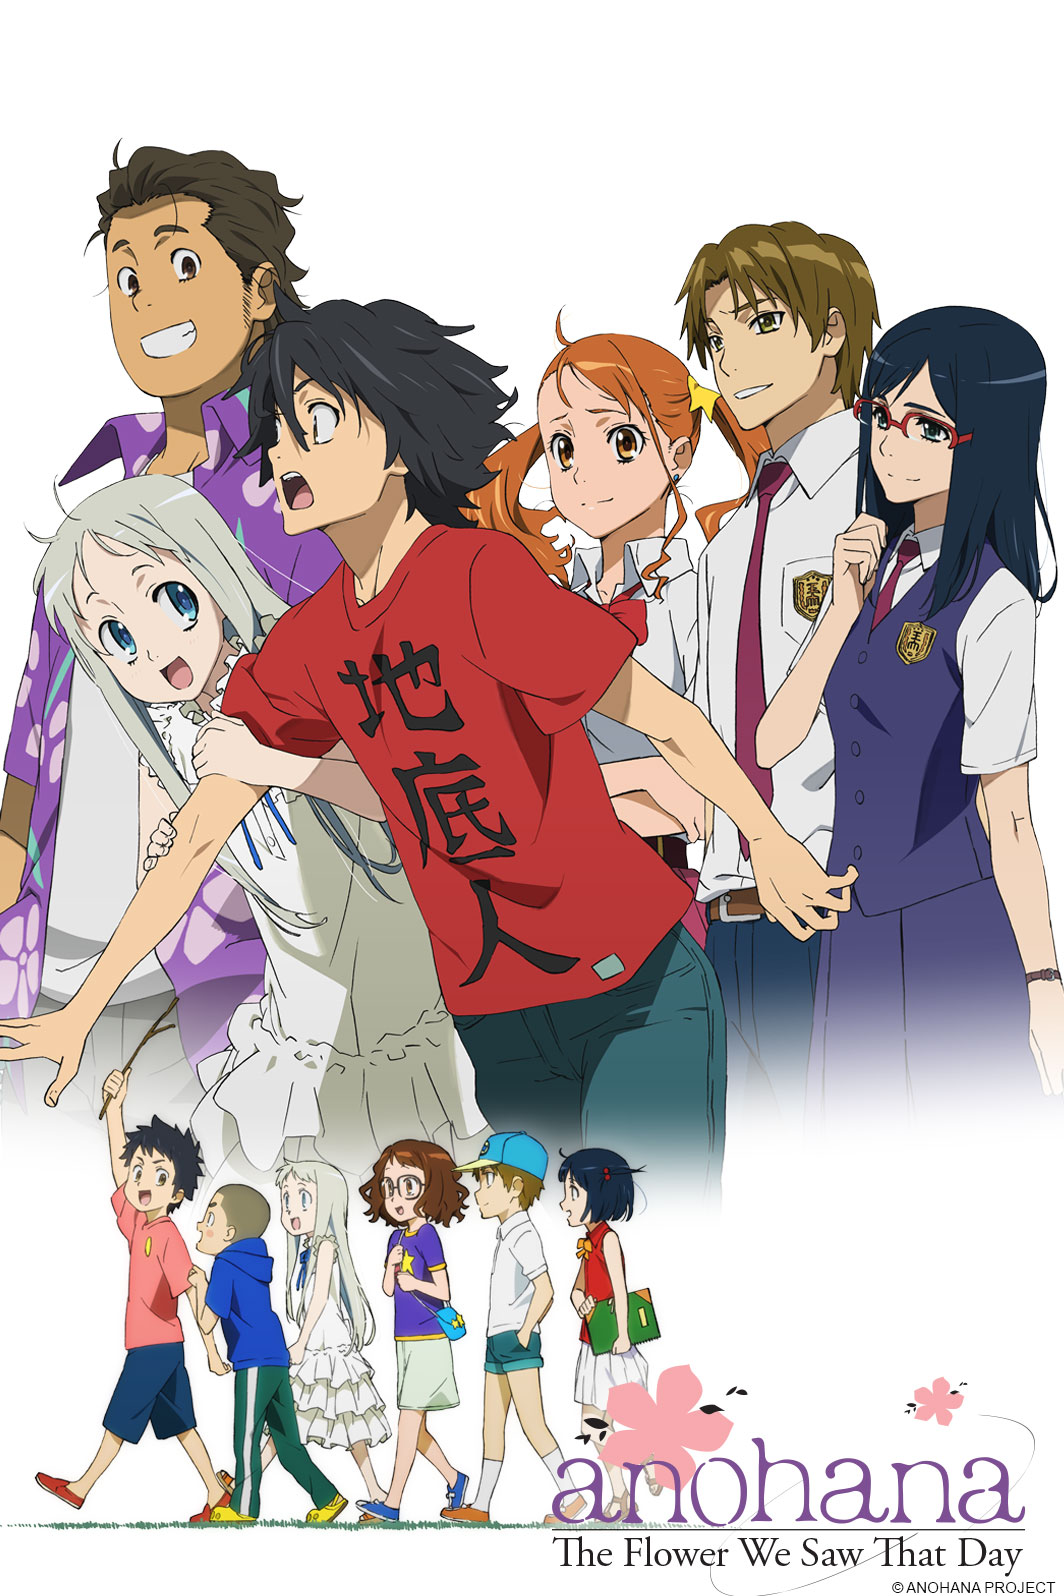 Anohana: The Flower We Saw That Day - Watch on Crunchyroll